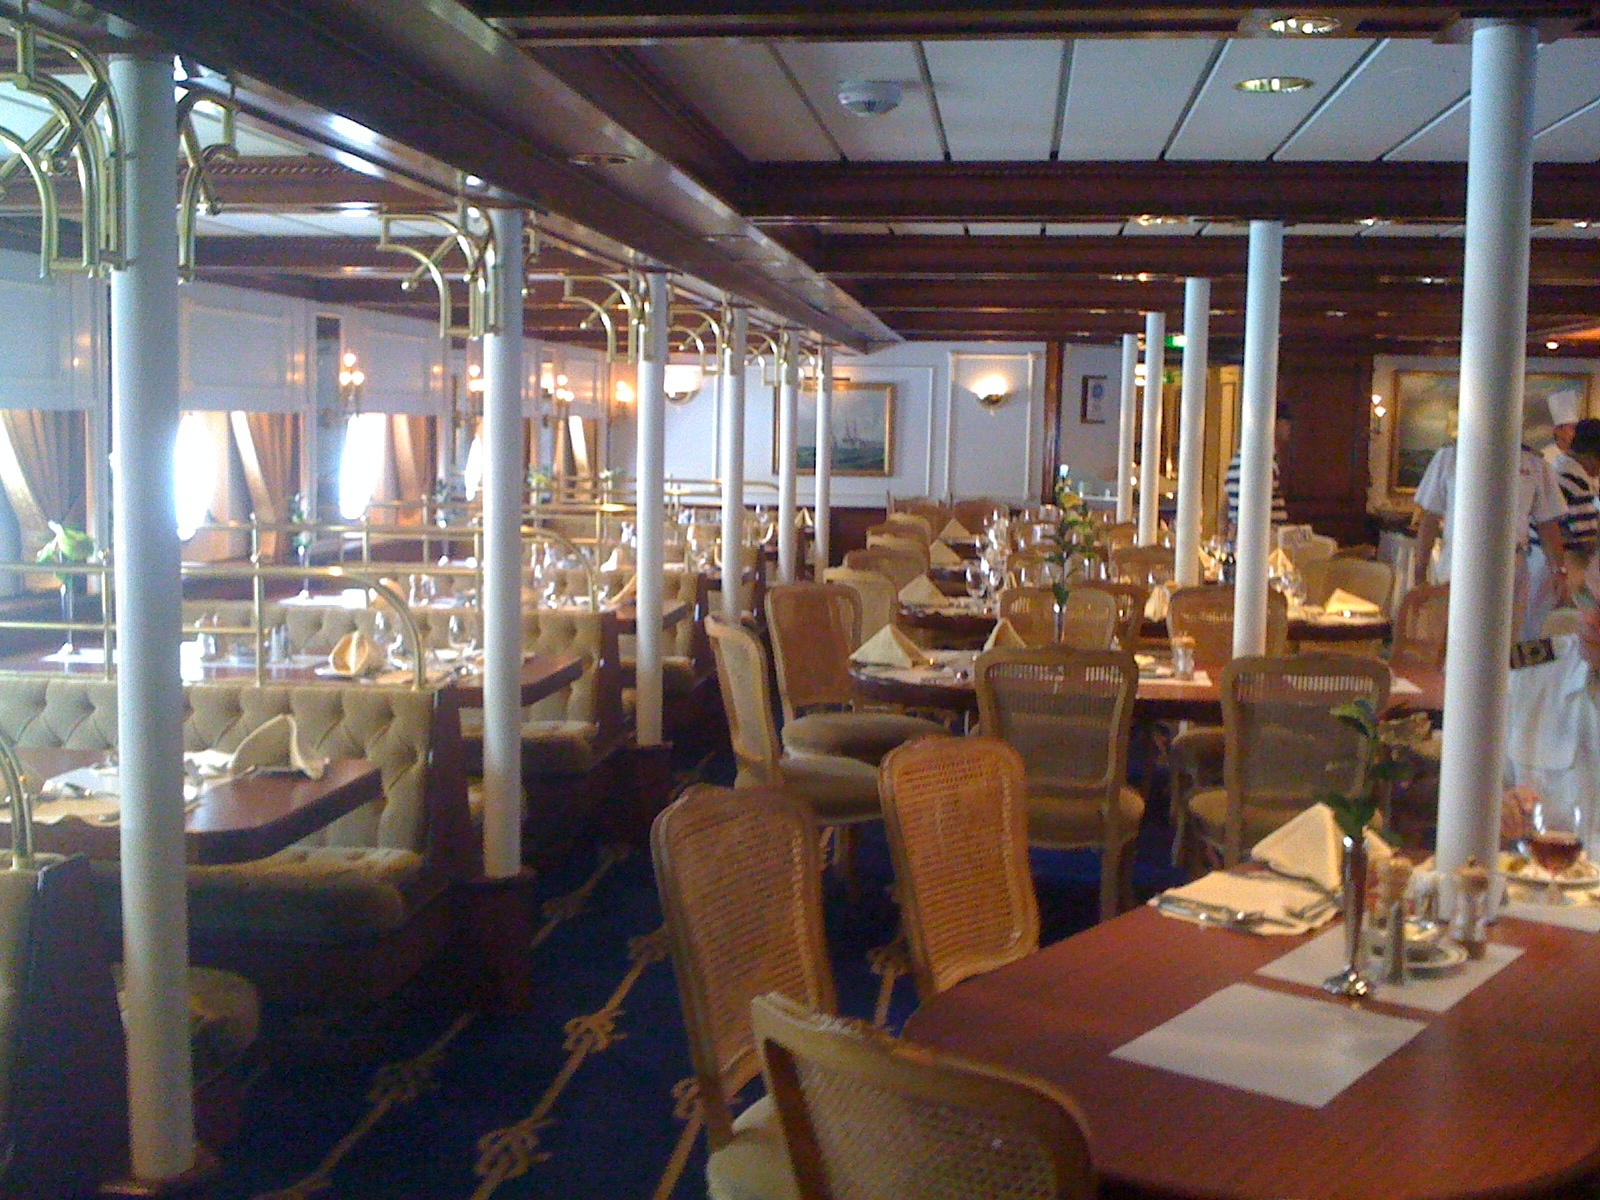 Star Clippers Cruisers Star Clippers Holidays Iglu Cruise